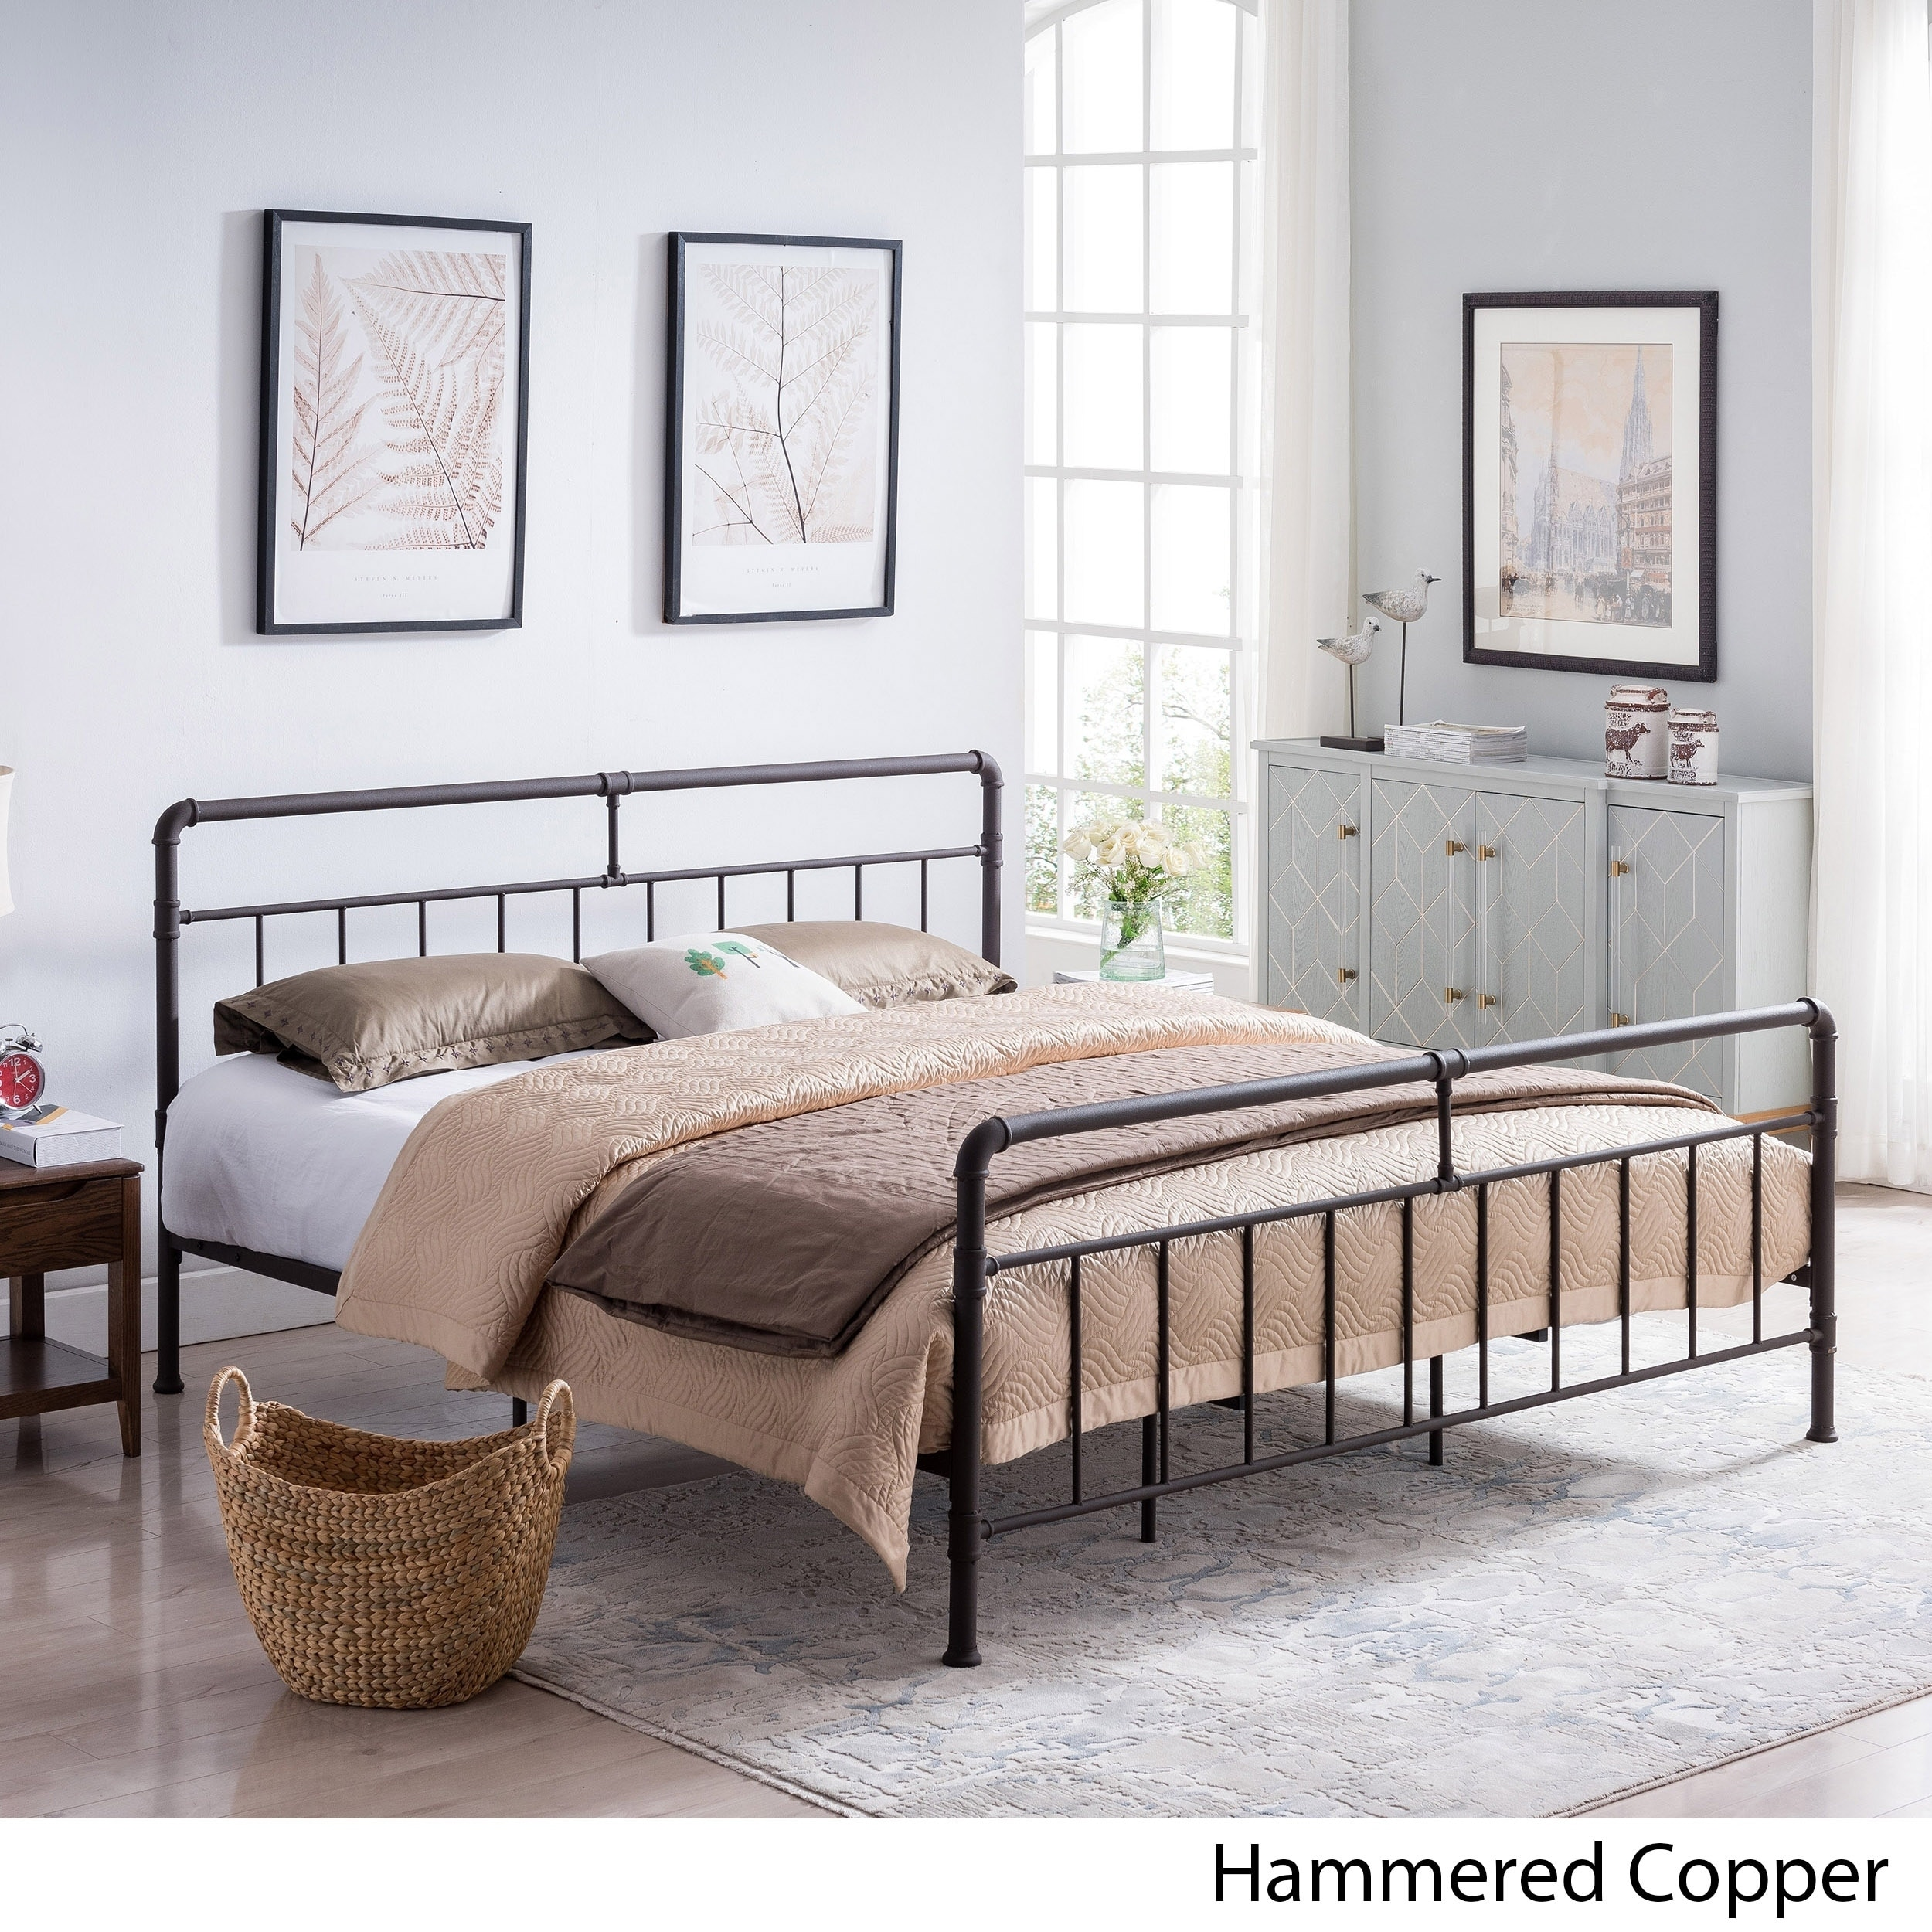 Mowry Industrial King Size Bed Frame By Christopher Knight Home On Sale Overstock 24115160